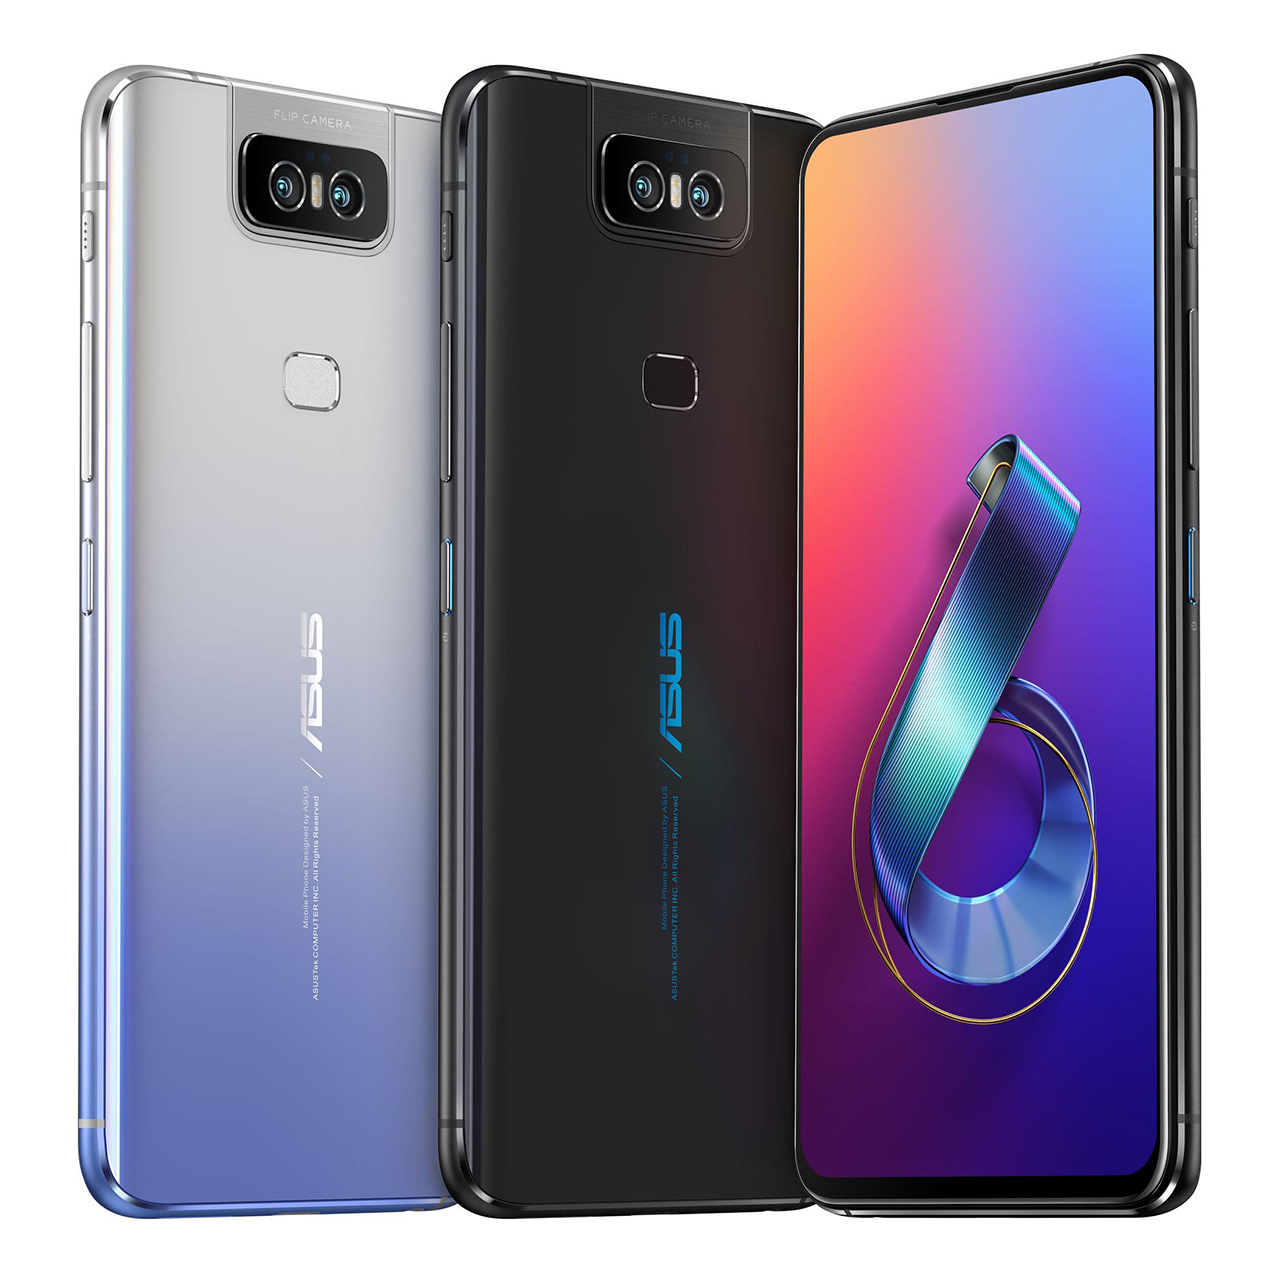 ASUS Zenfone 6 is official: no holes, rotatable camera and 5,000 mAh battery